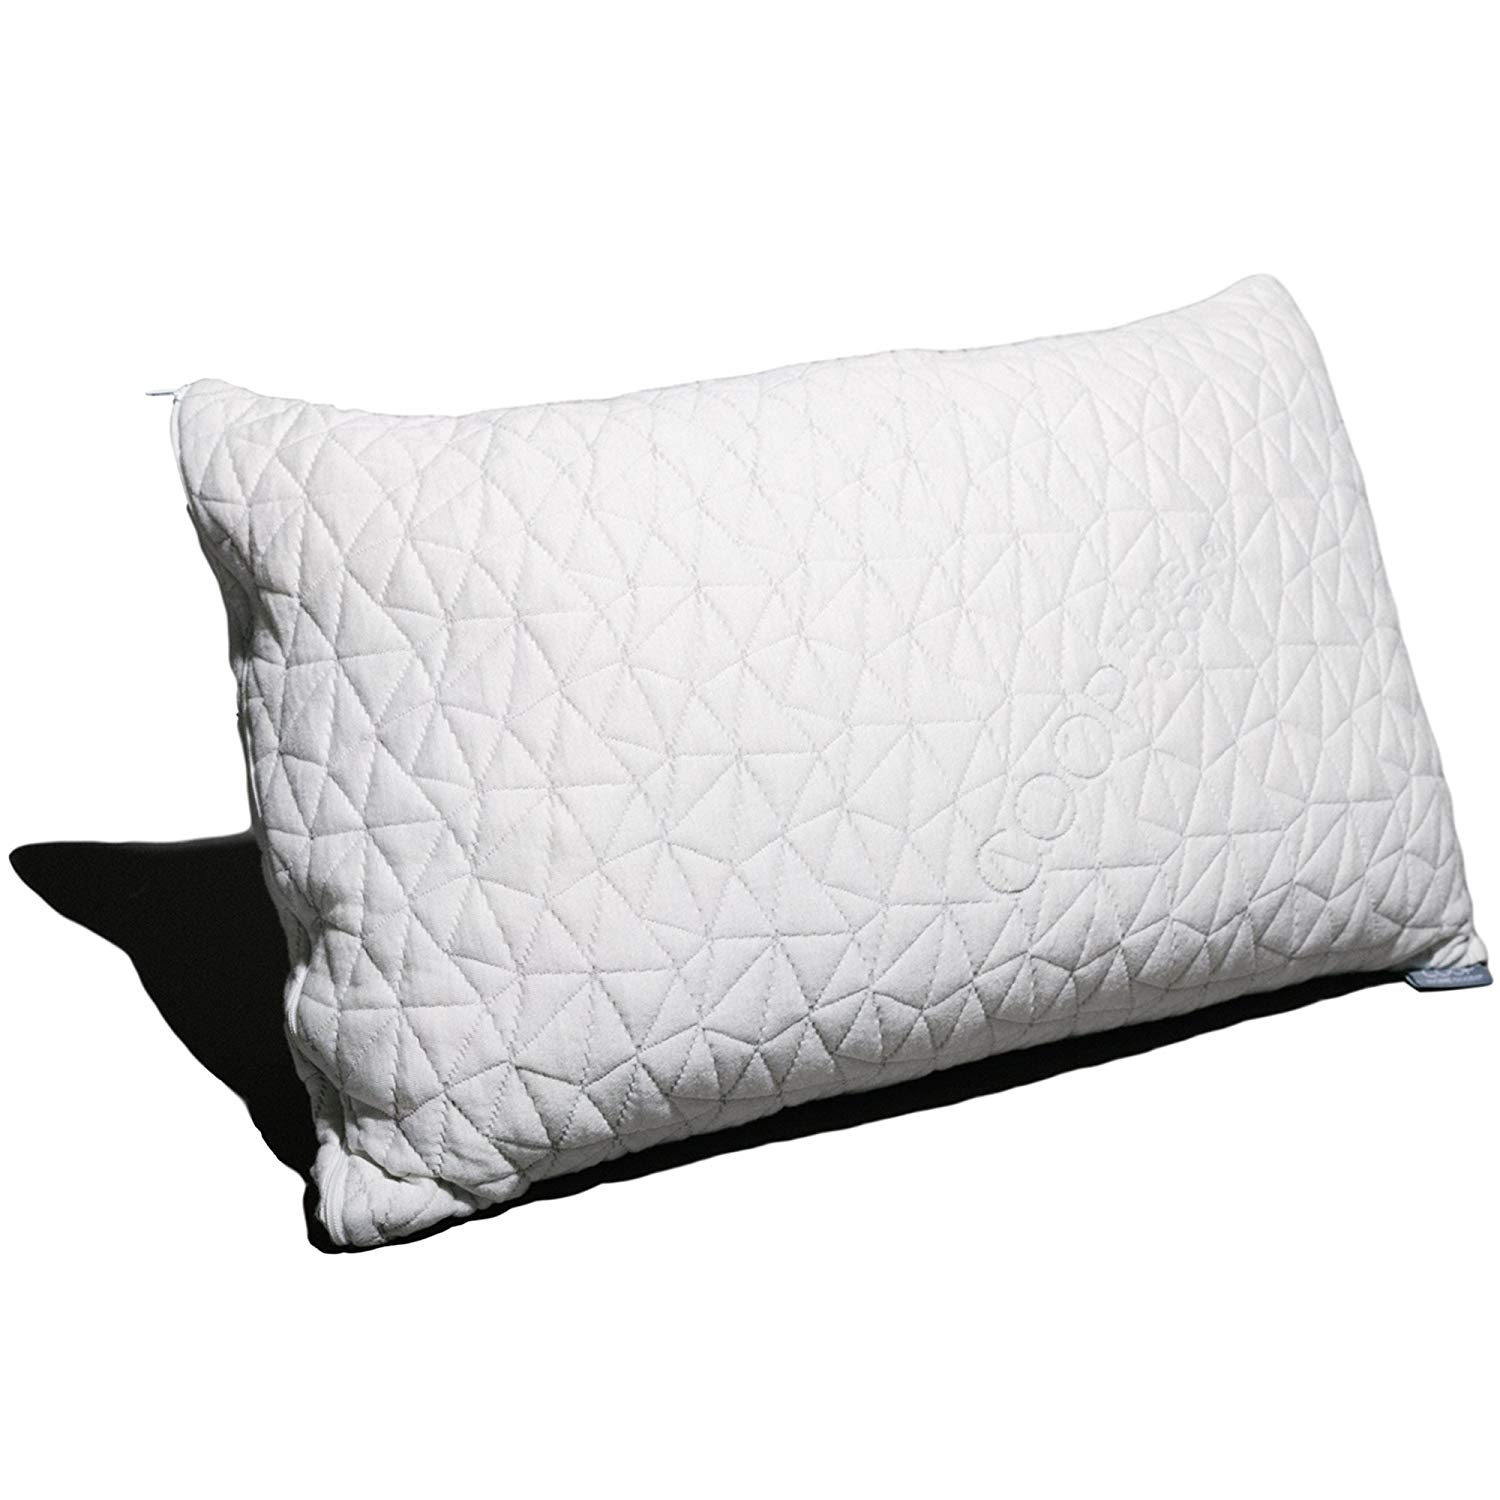 Shredded Memory Foam Pillow Coop Home Goods Review